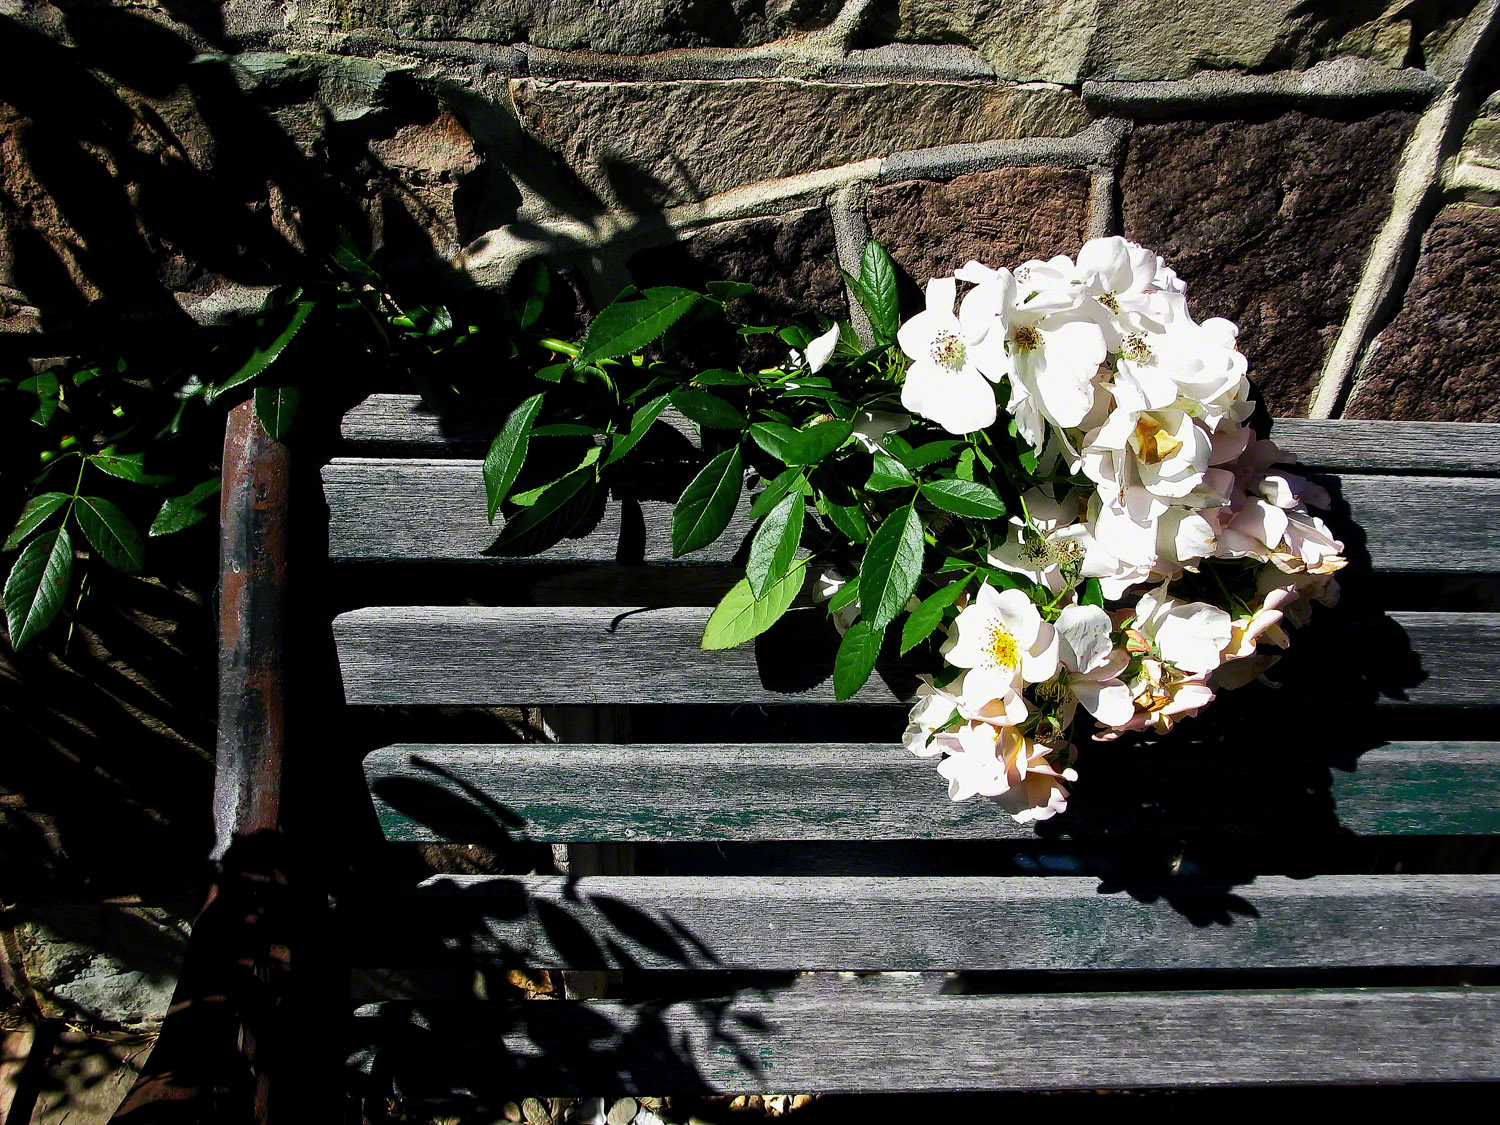 The old park bench gave this climbing rose a place to rest.